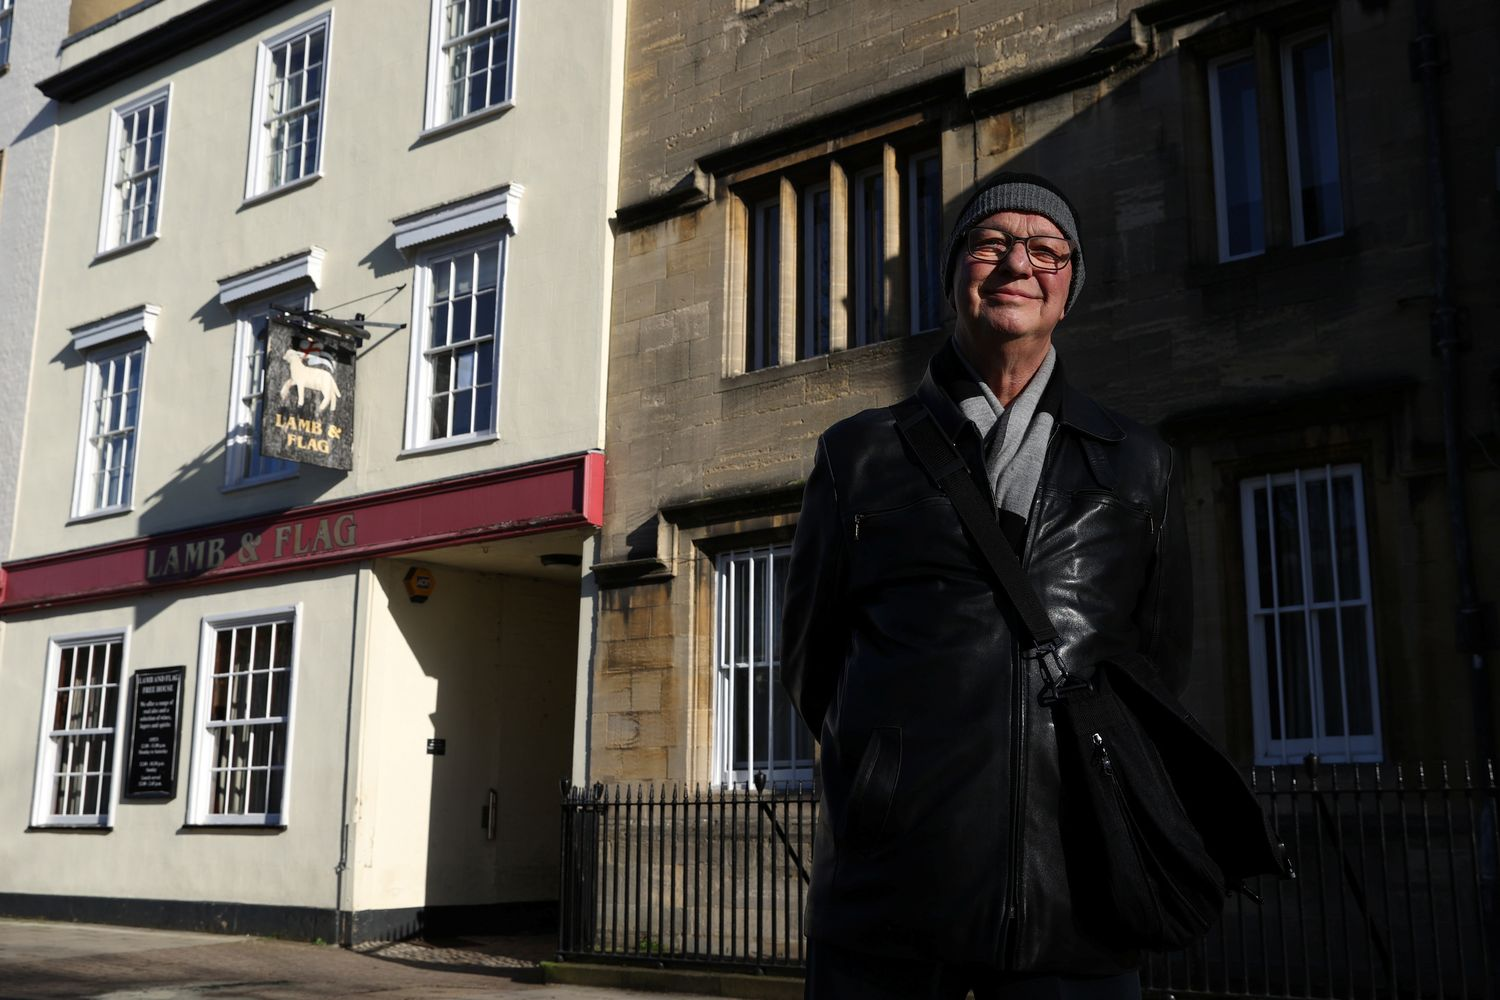 450-year-old Oxford pub succumbs to Covid